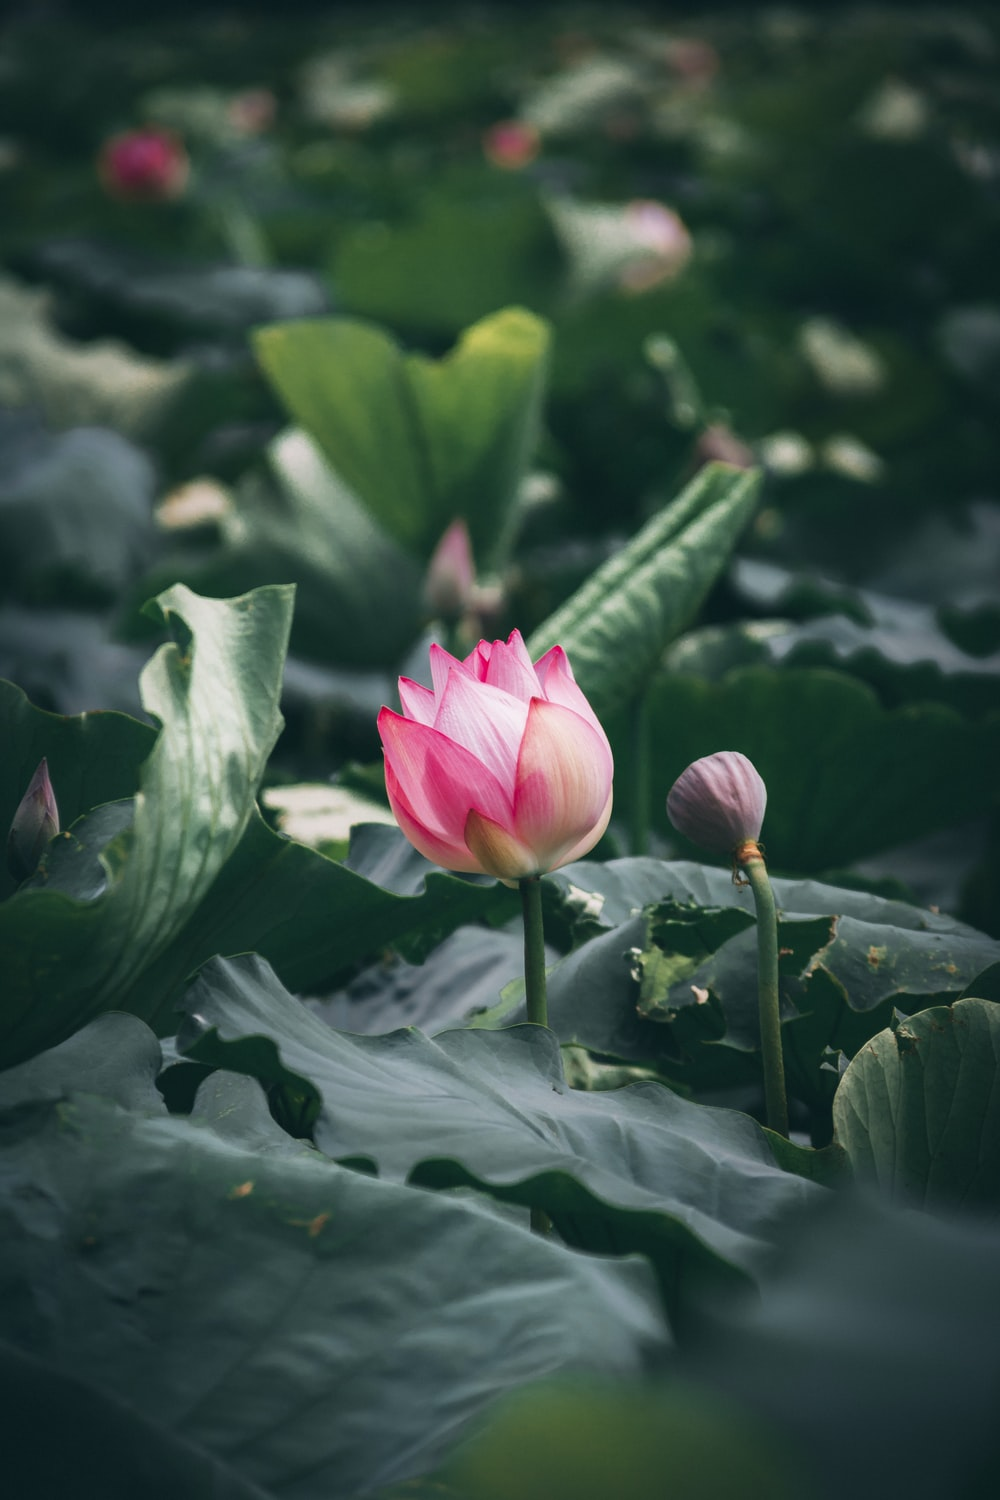 Flower Lily Plant And Flora Hd Photo By Xuan Nguyen At Darthxuan